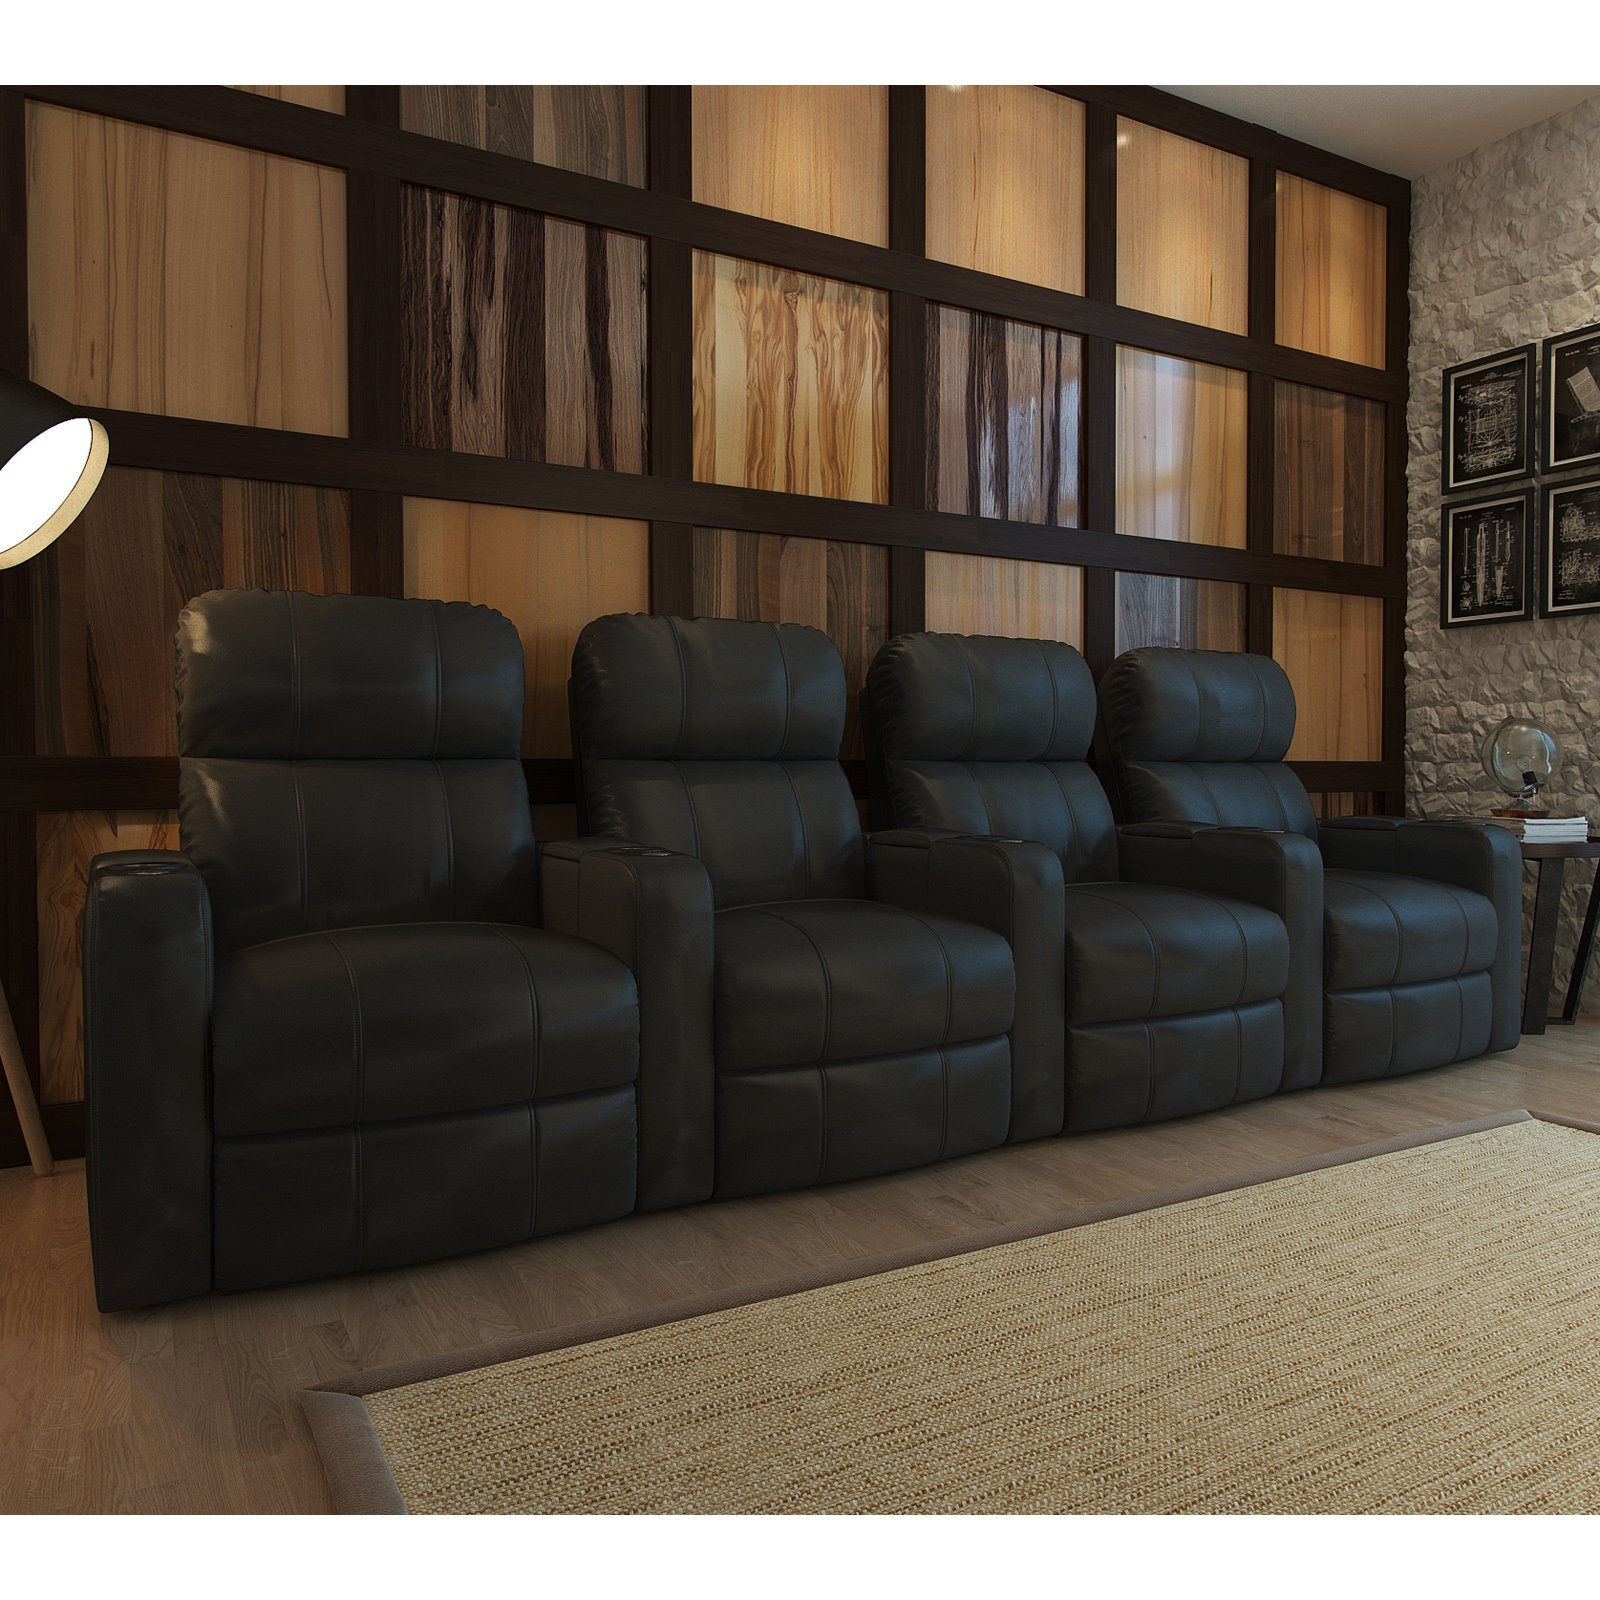 Octane Turbo XL700 4 Seater Bonded Leather Home Theater Seating